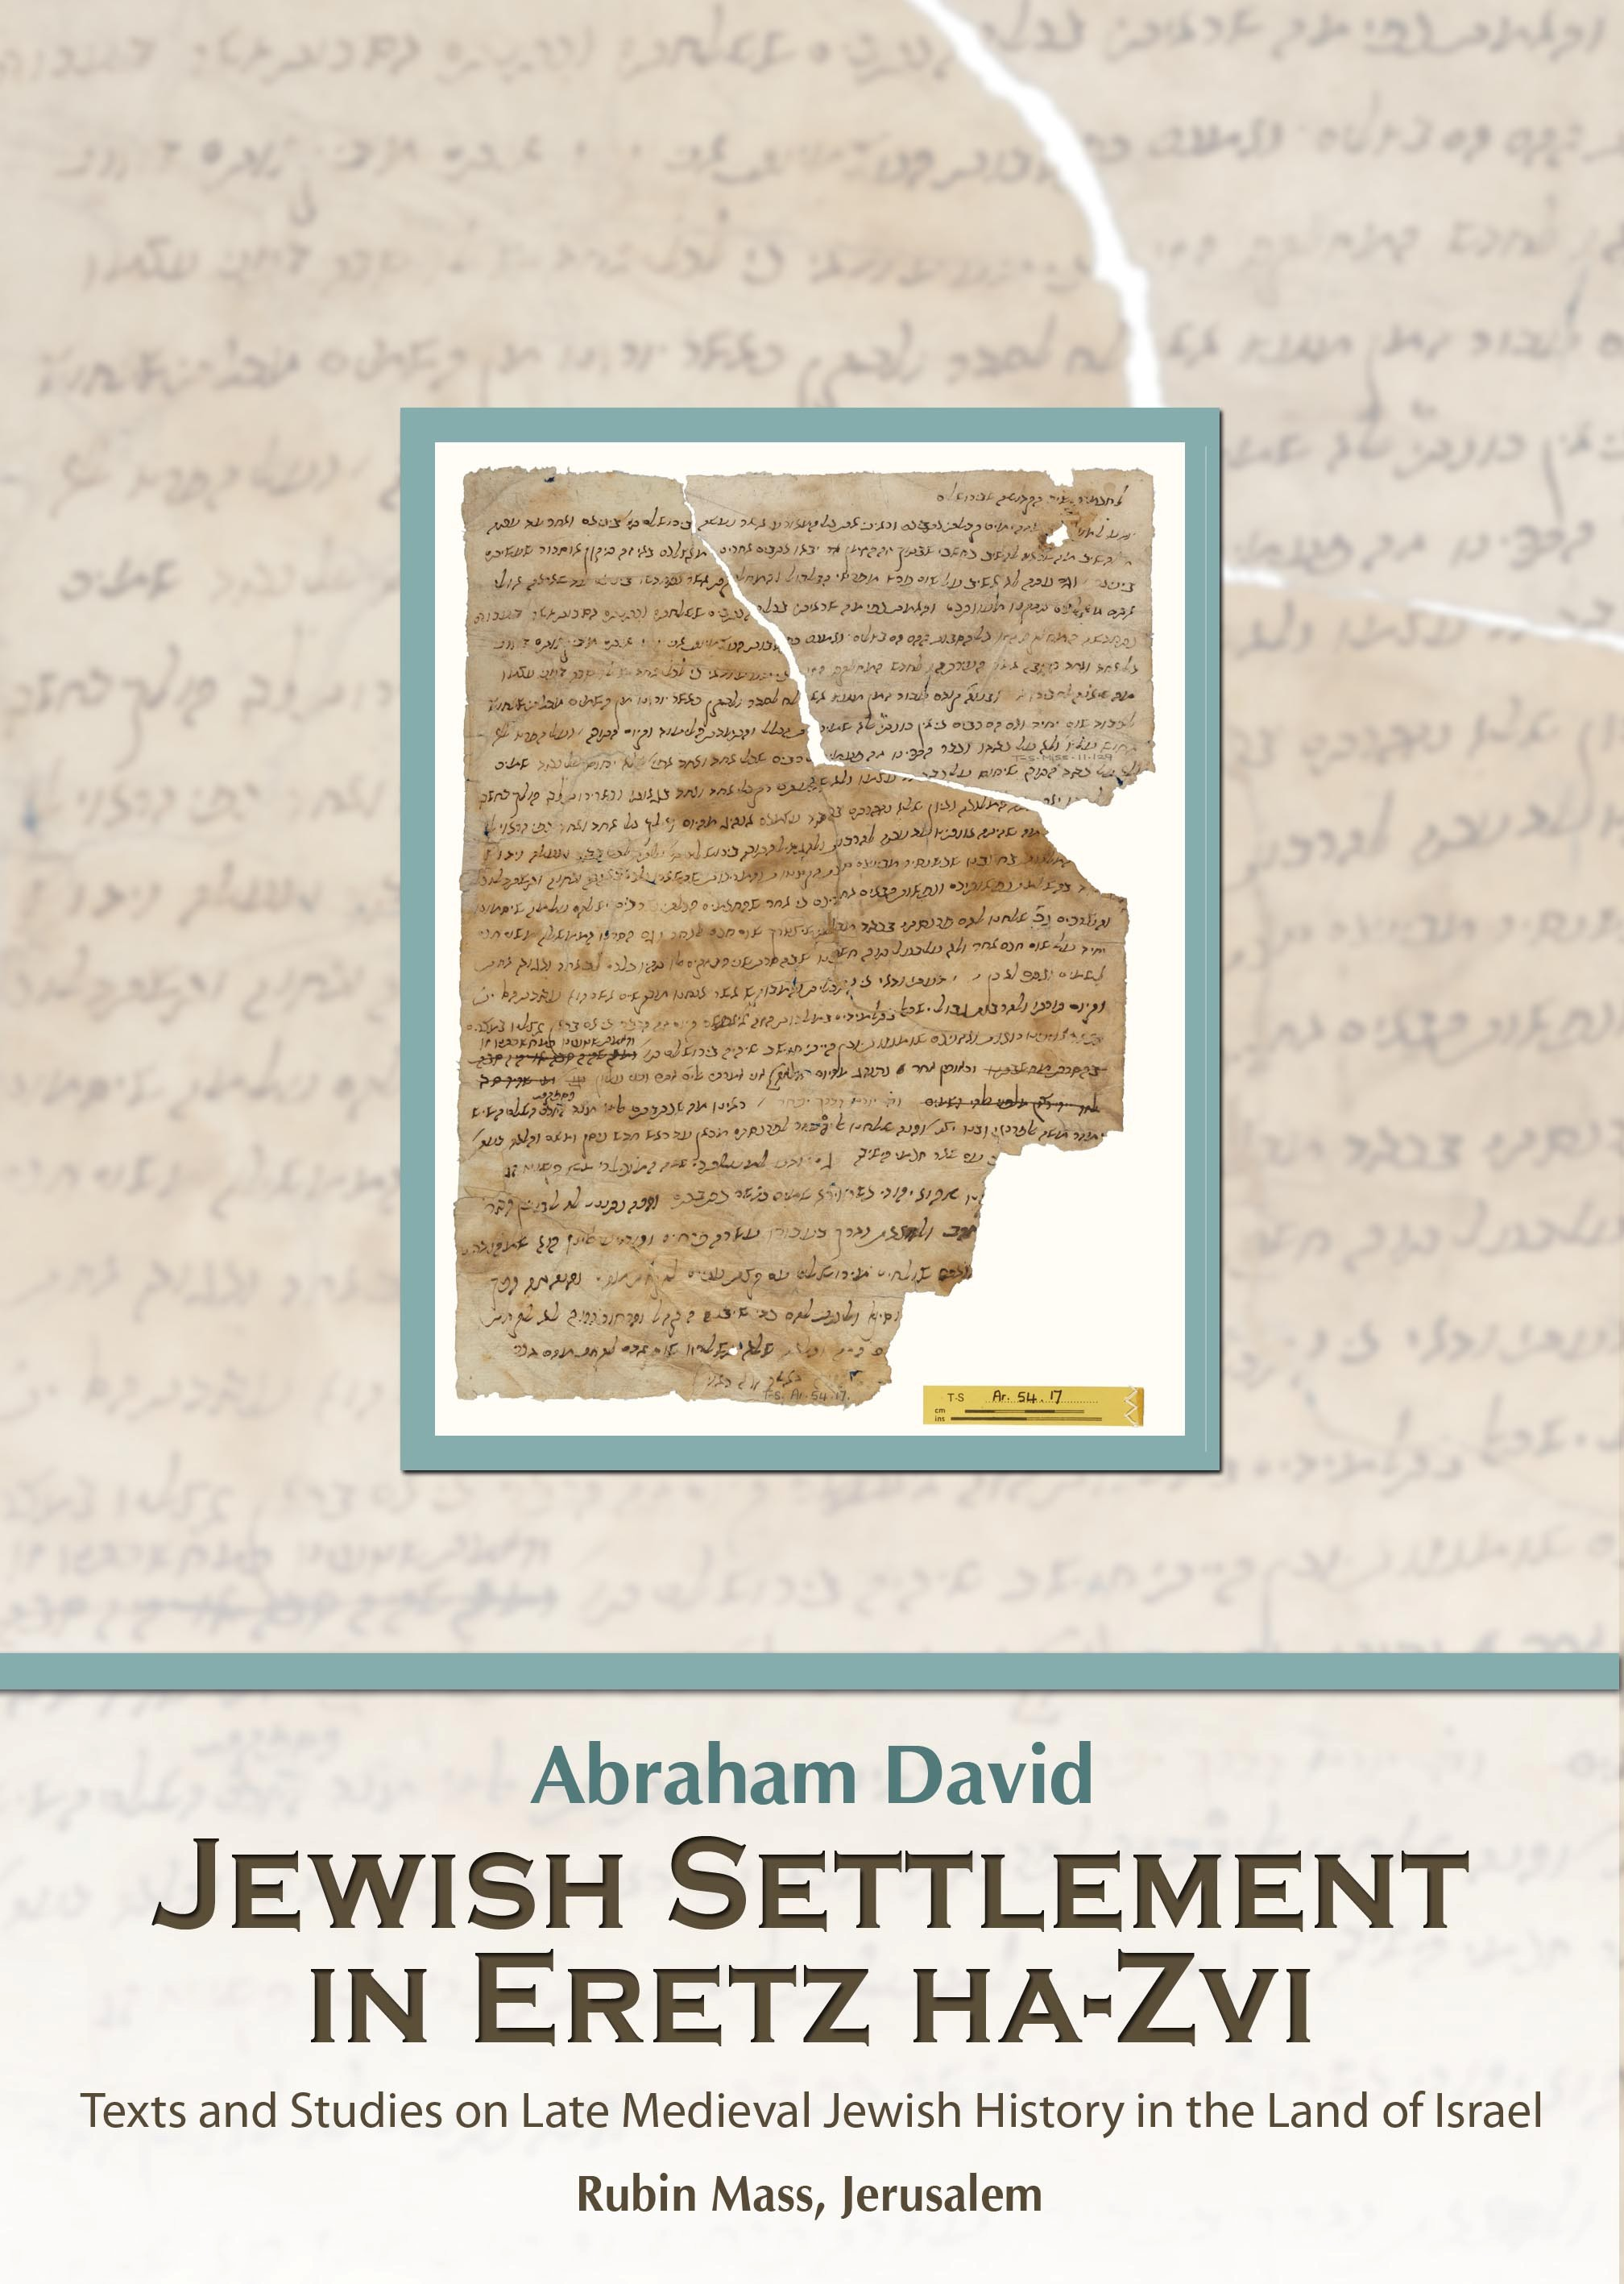 The frontcover of the book Jewish Settlement in Eretz ha-Zvi English and Hebrew by David Abraham